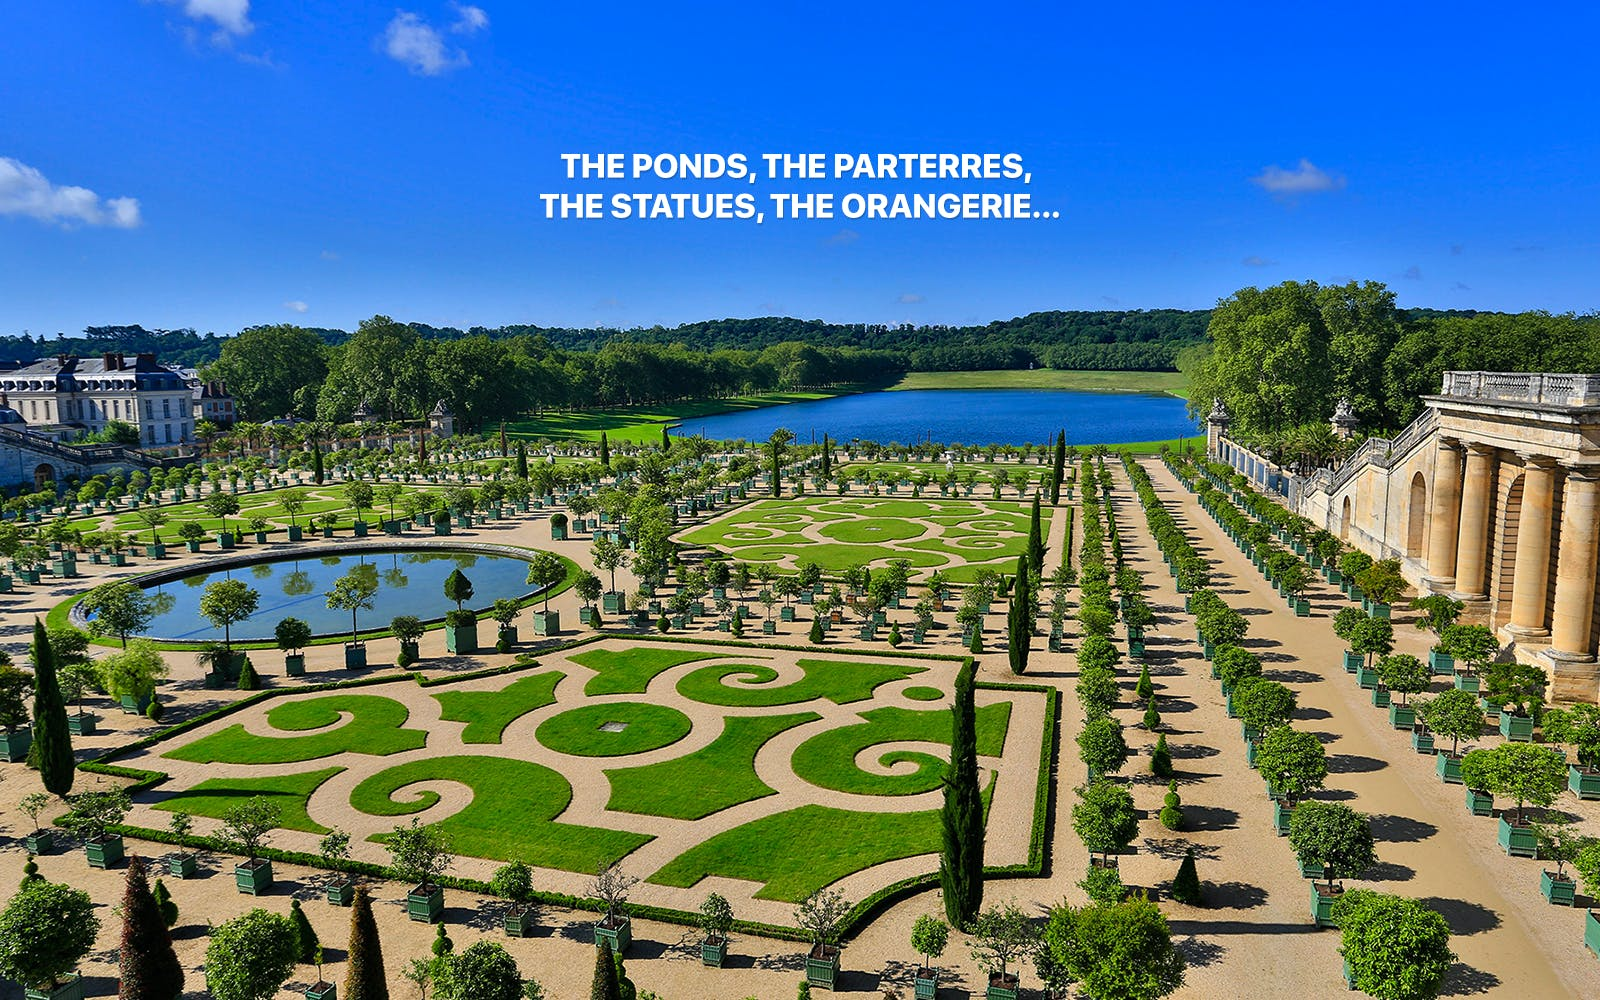 palace of versailles all access passport entry with audioguide-4